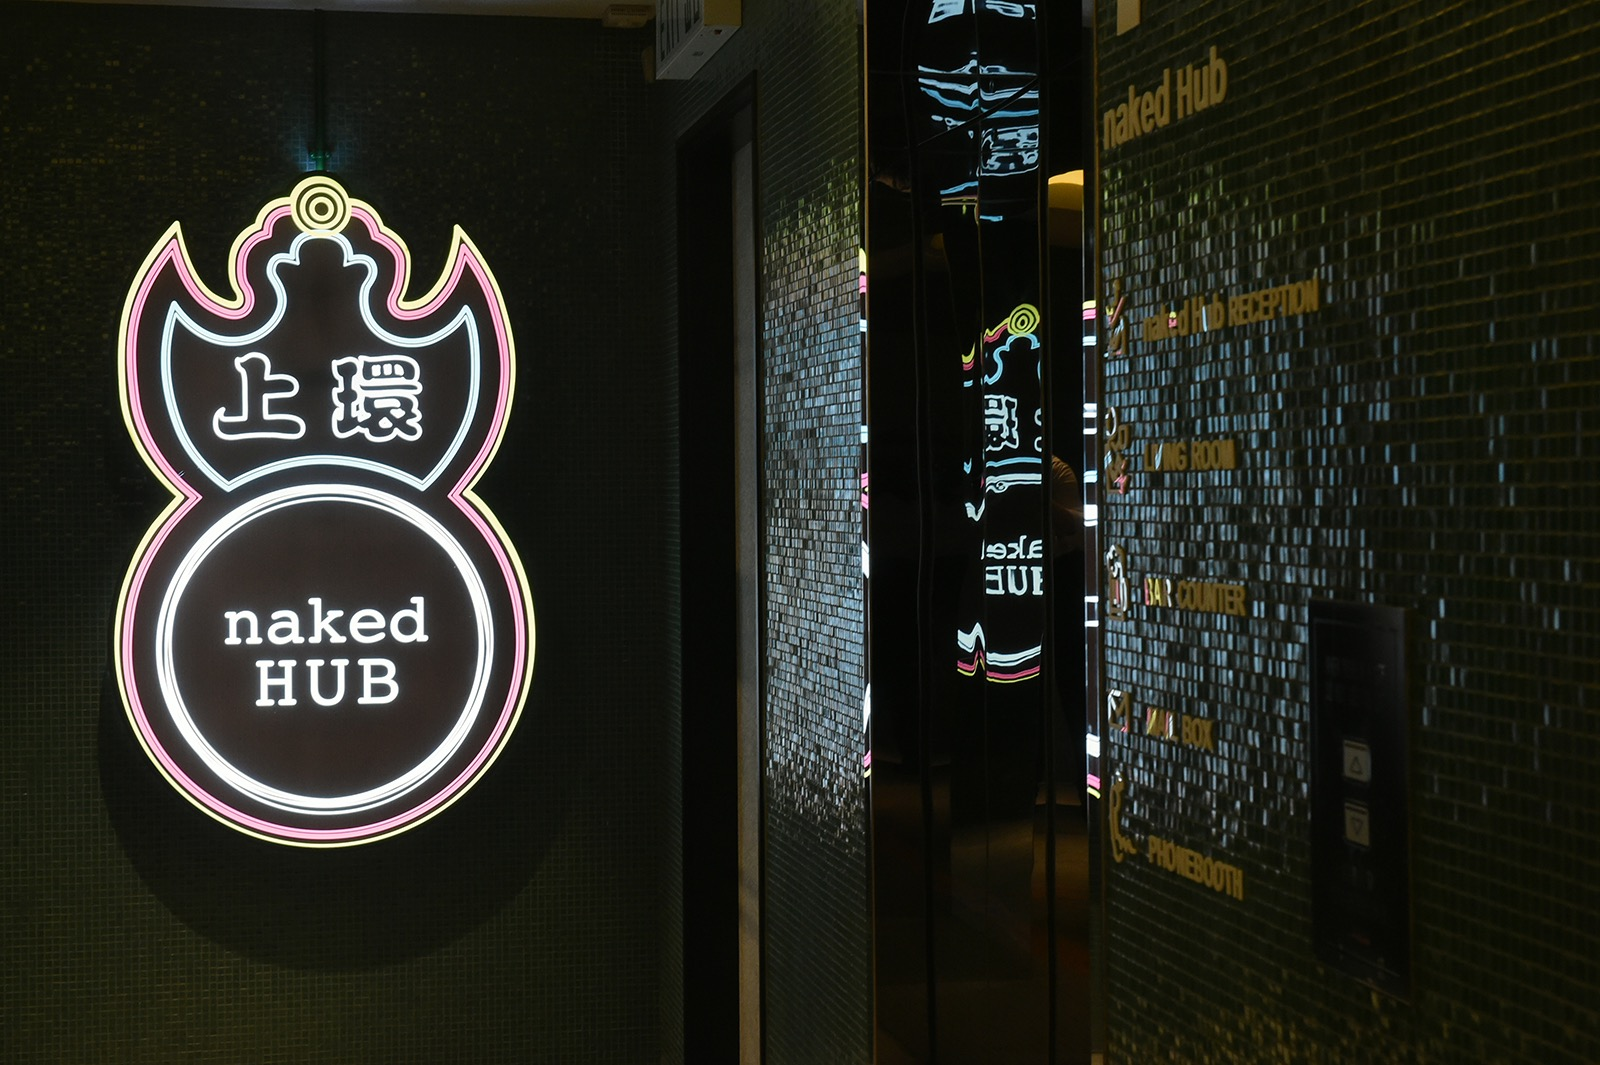 naked-hub-hong-kong-2